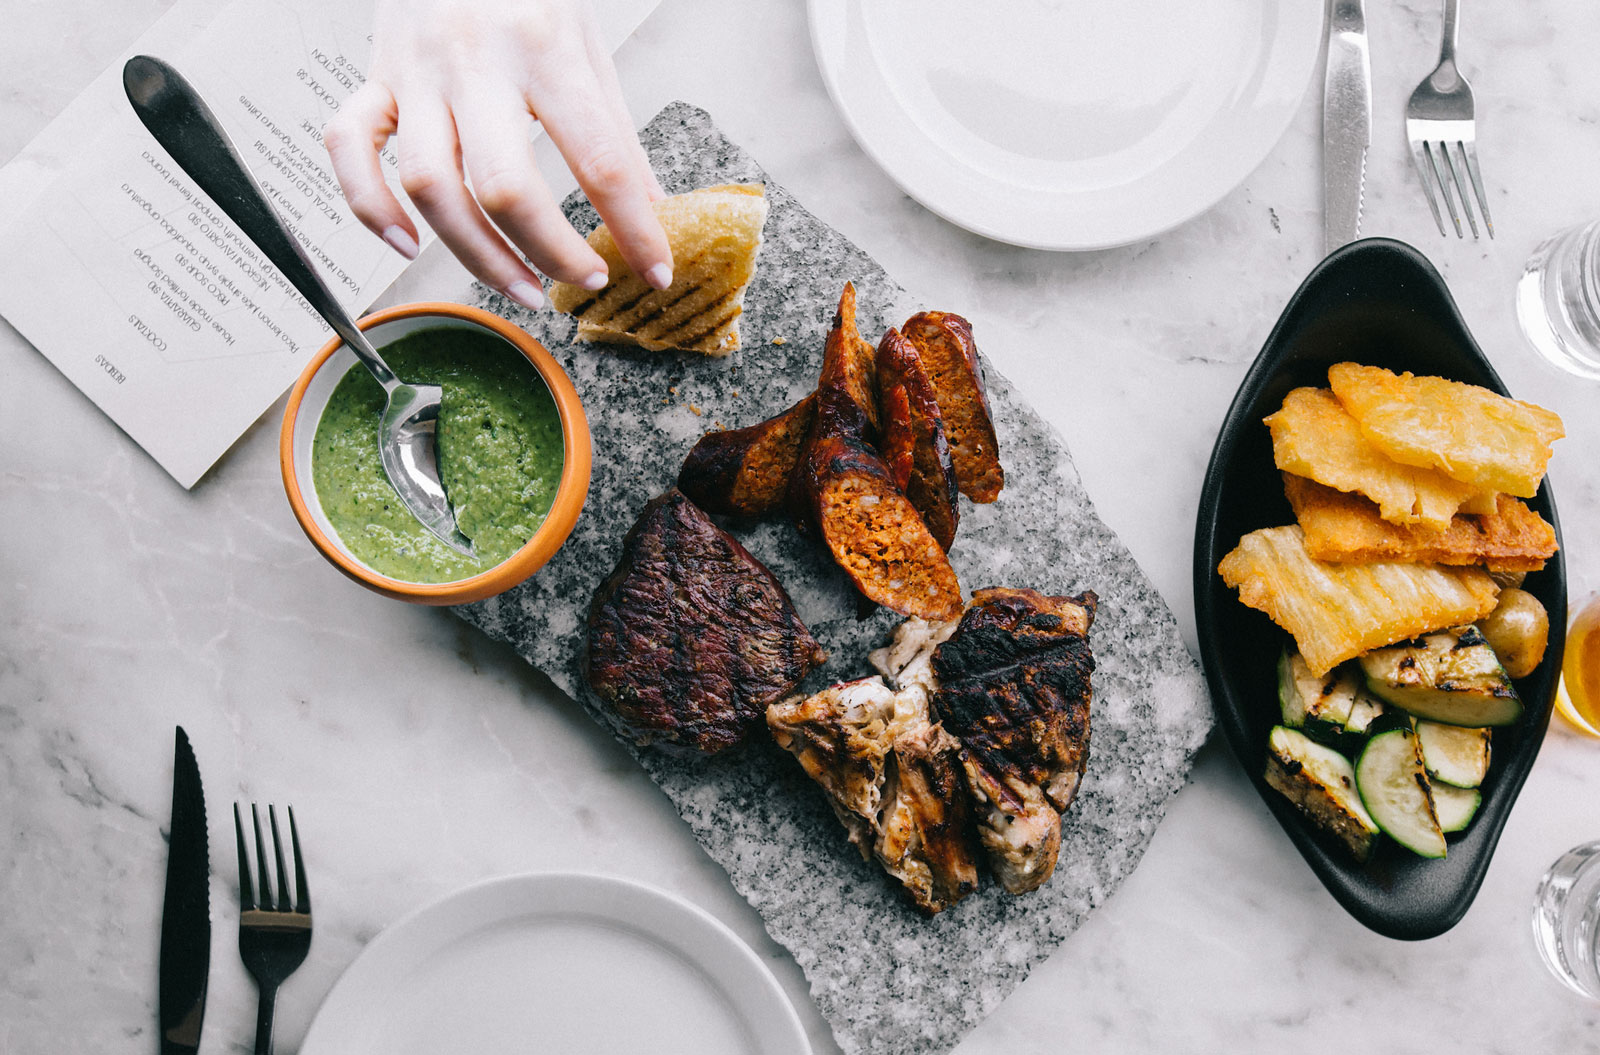 Kitsilano's Cacao Fires Up Latin American-Style Barbecue on Saturdays